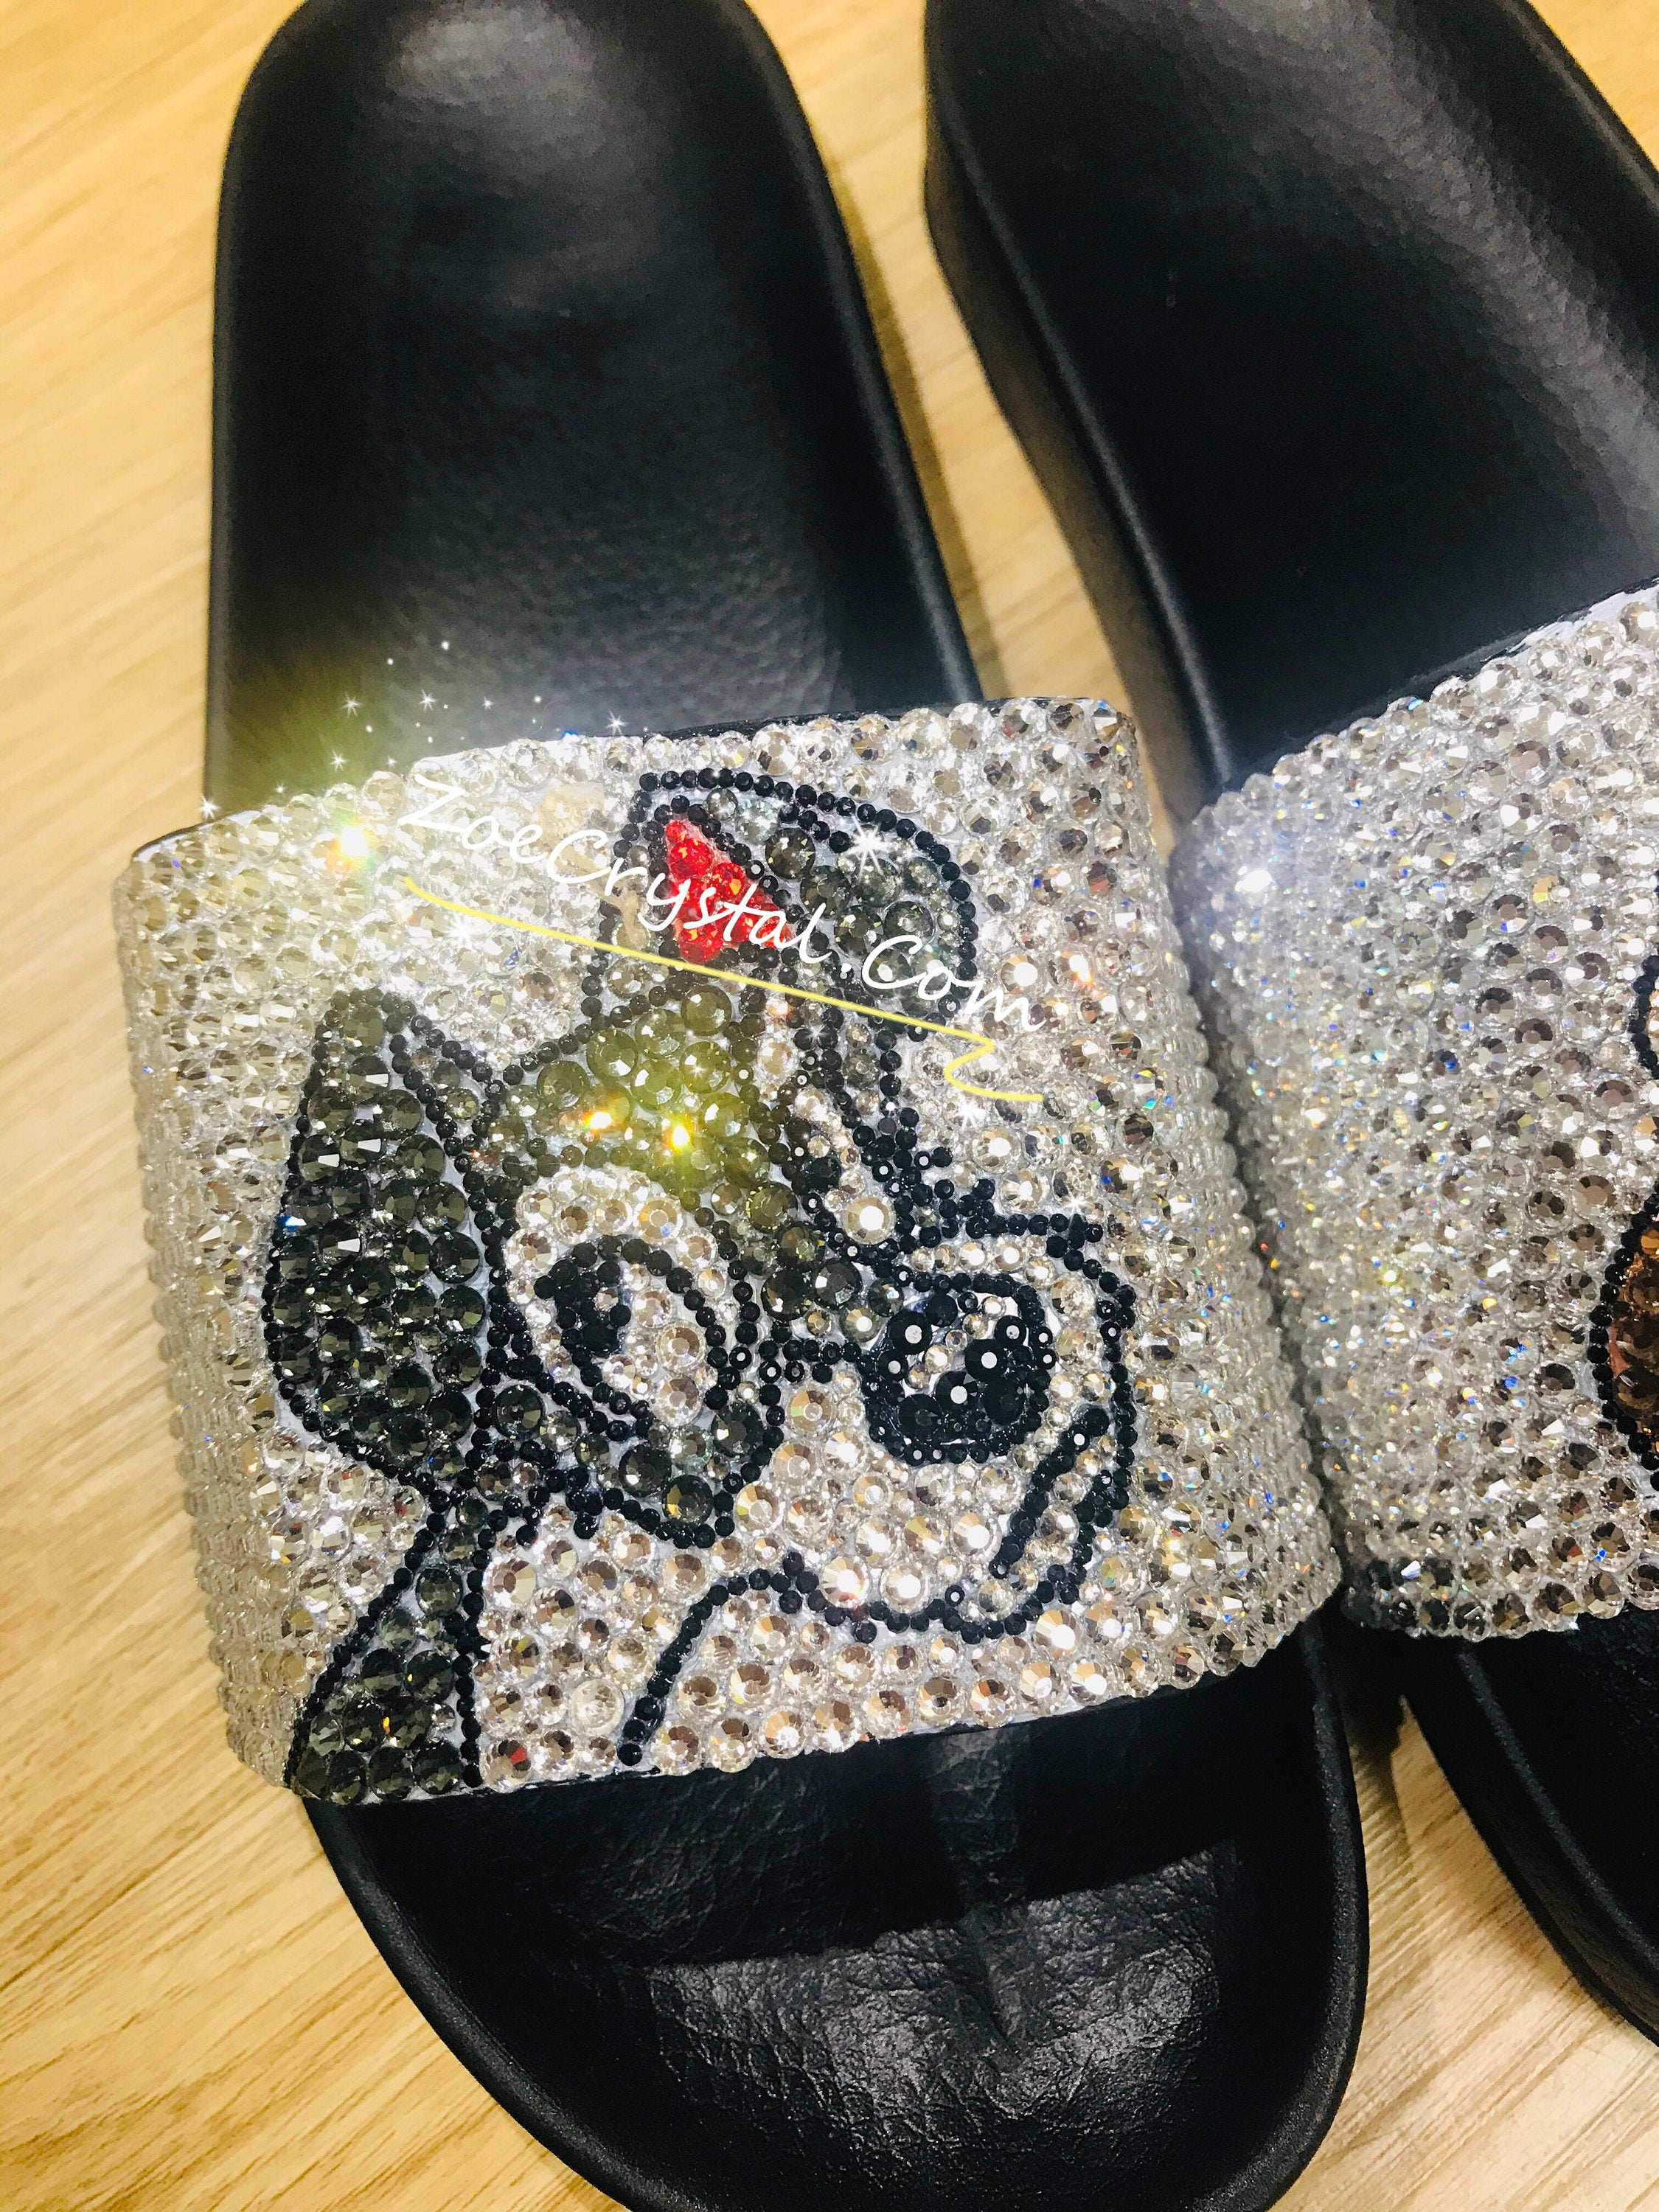 Customize Your SANDALS SLIDES Slippers in Summer Beach, Wedding, Fashion - Example of Lady and the tramp - Bedazzled Swarovski Rhinestone